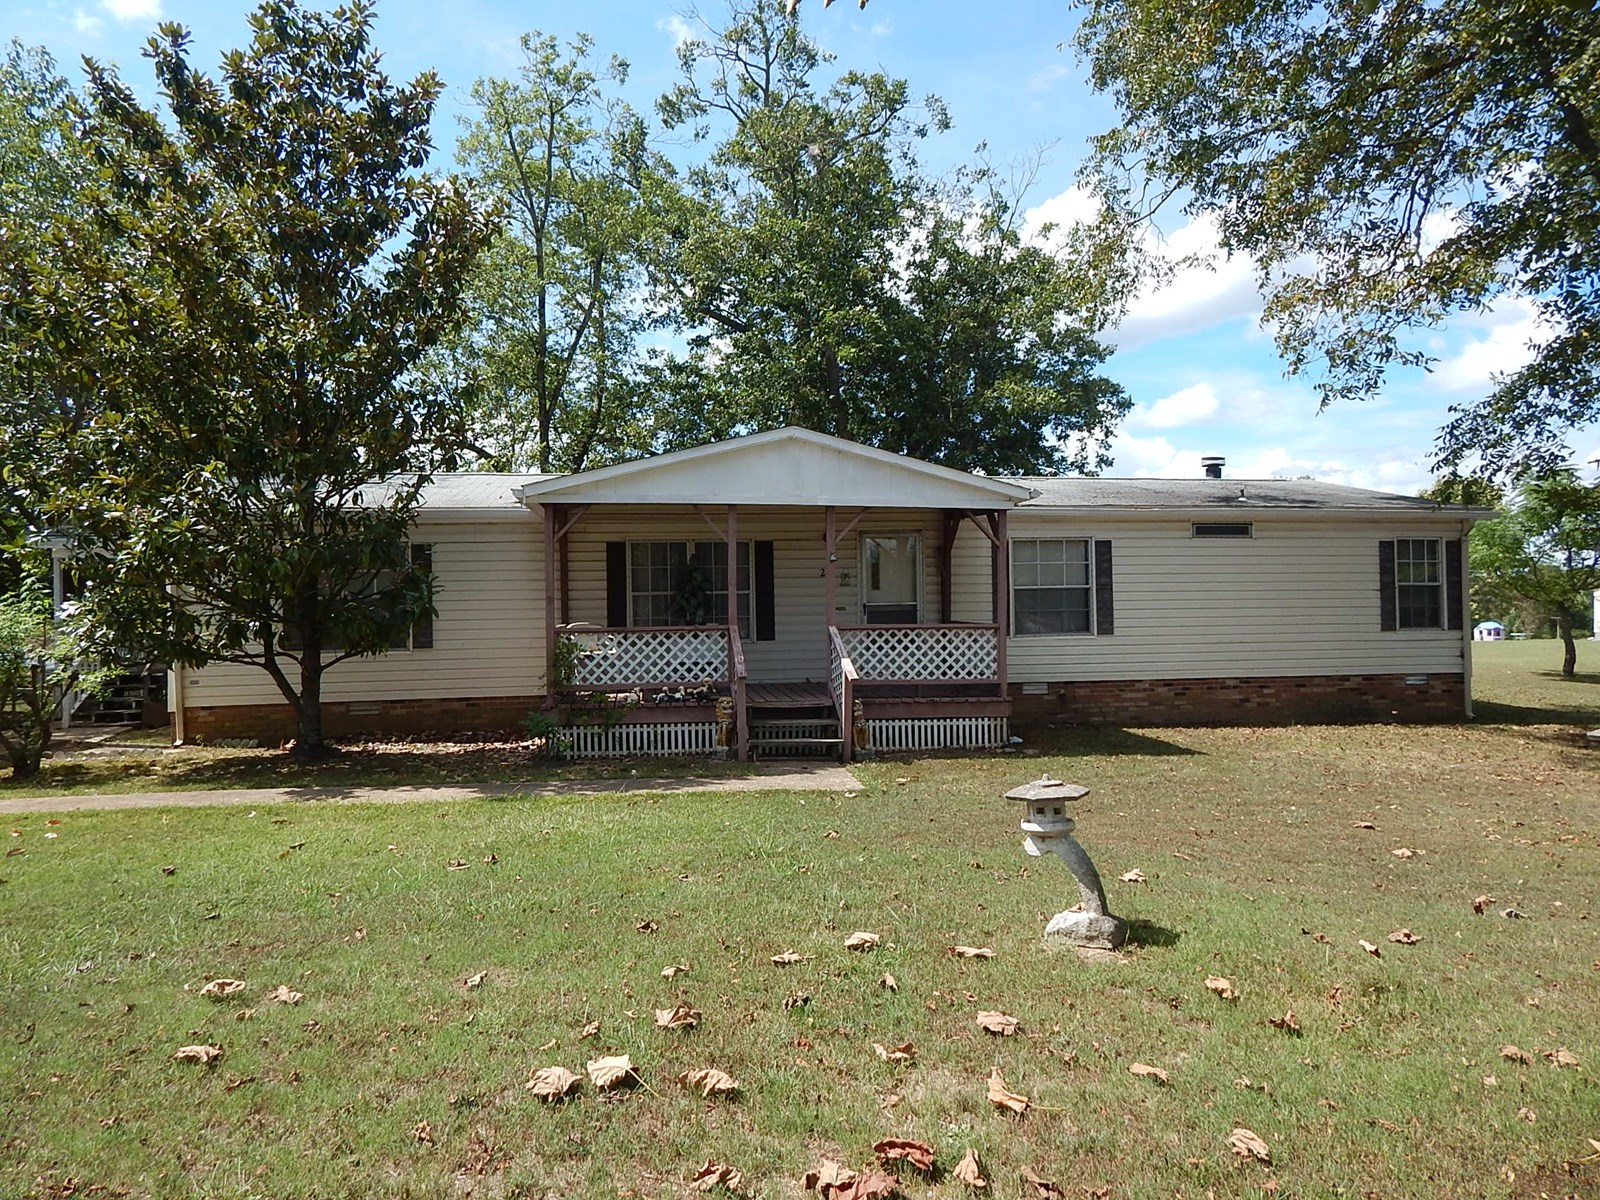 3 BEDROOM HOME WITH GARAGE STORAGE BUILDING IN ADAMSVILLE TN